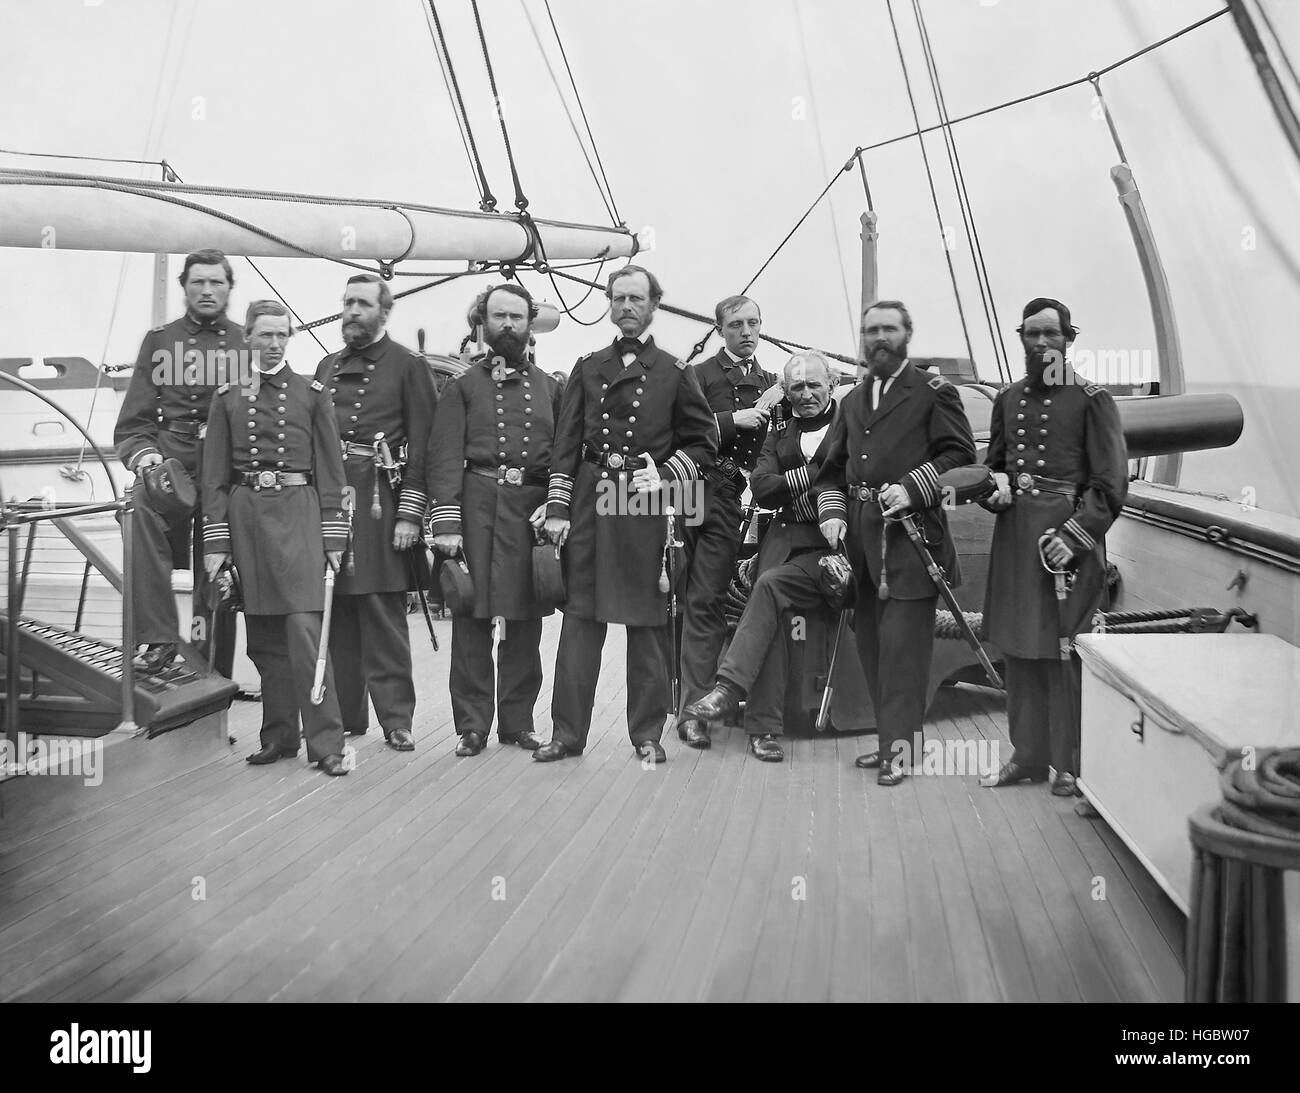 Admiral John A. Dahlgren and his officers during the American Civil War - Stock Image